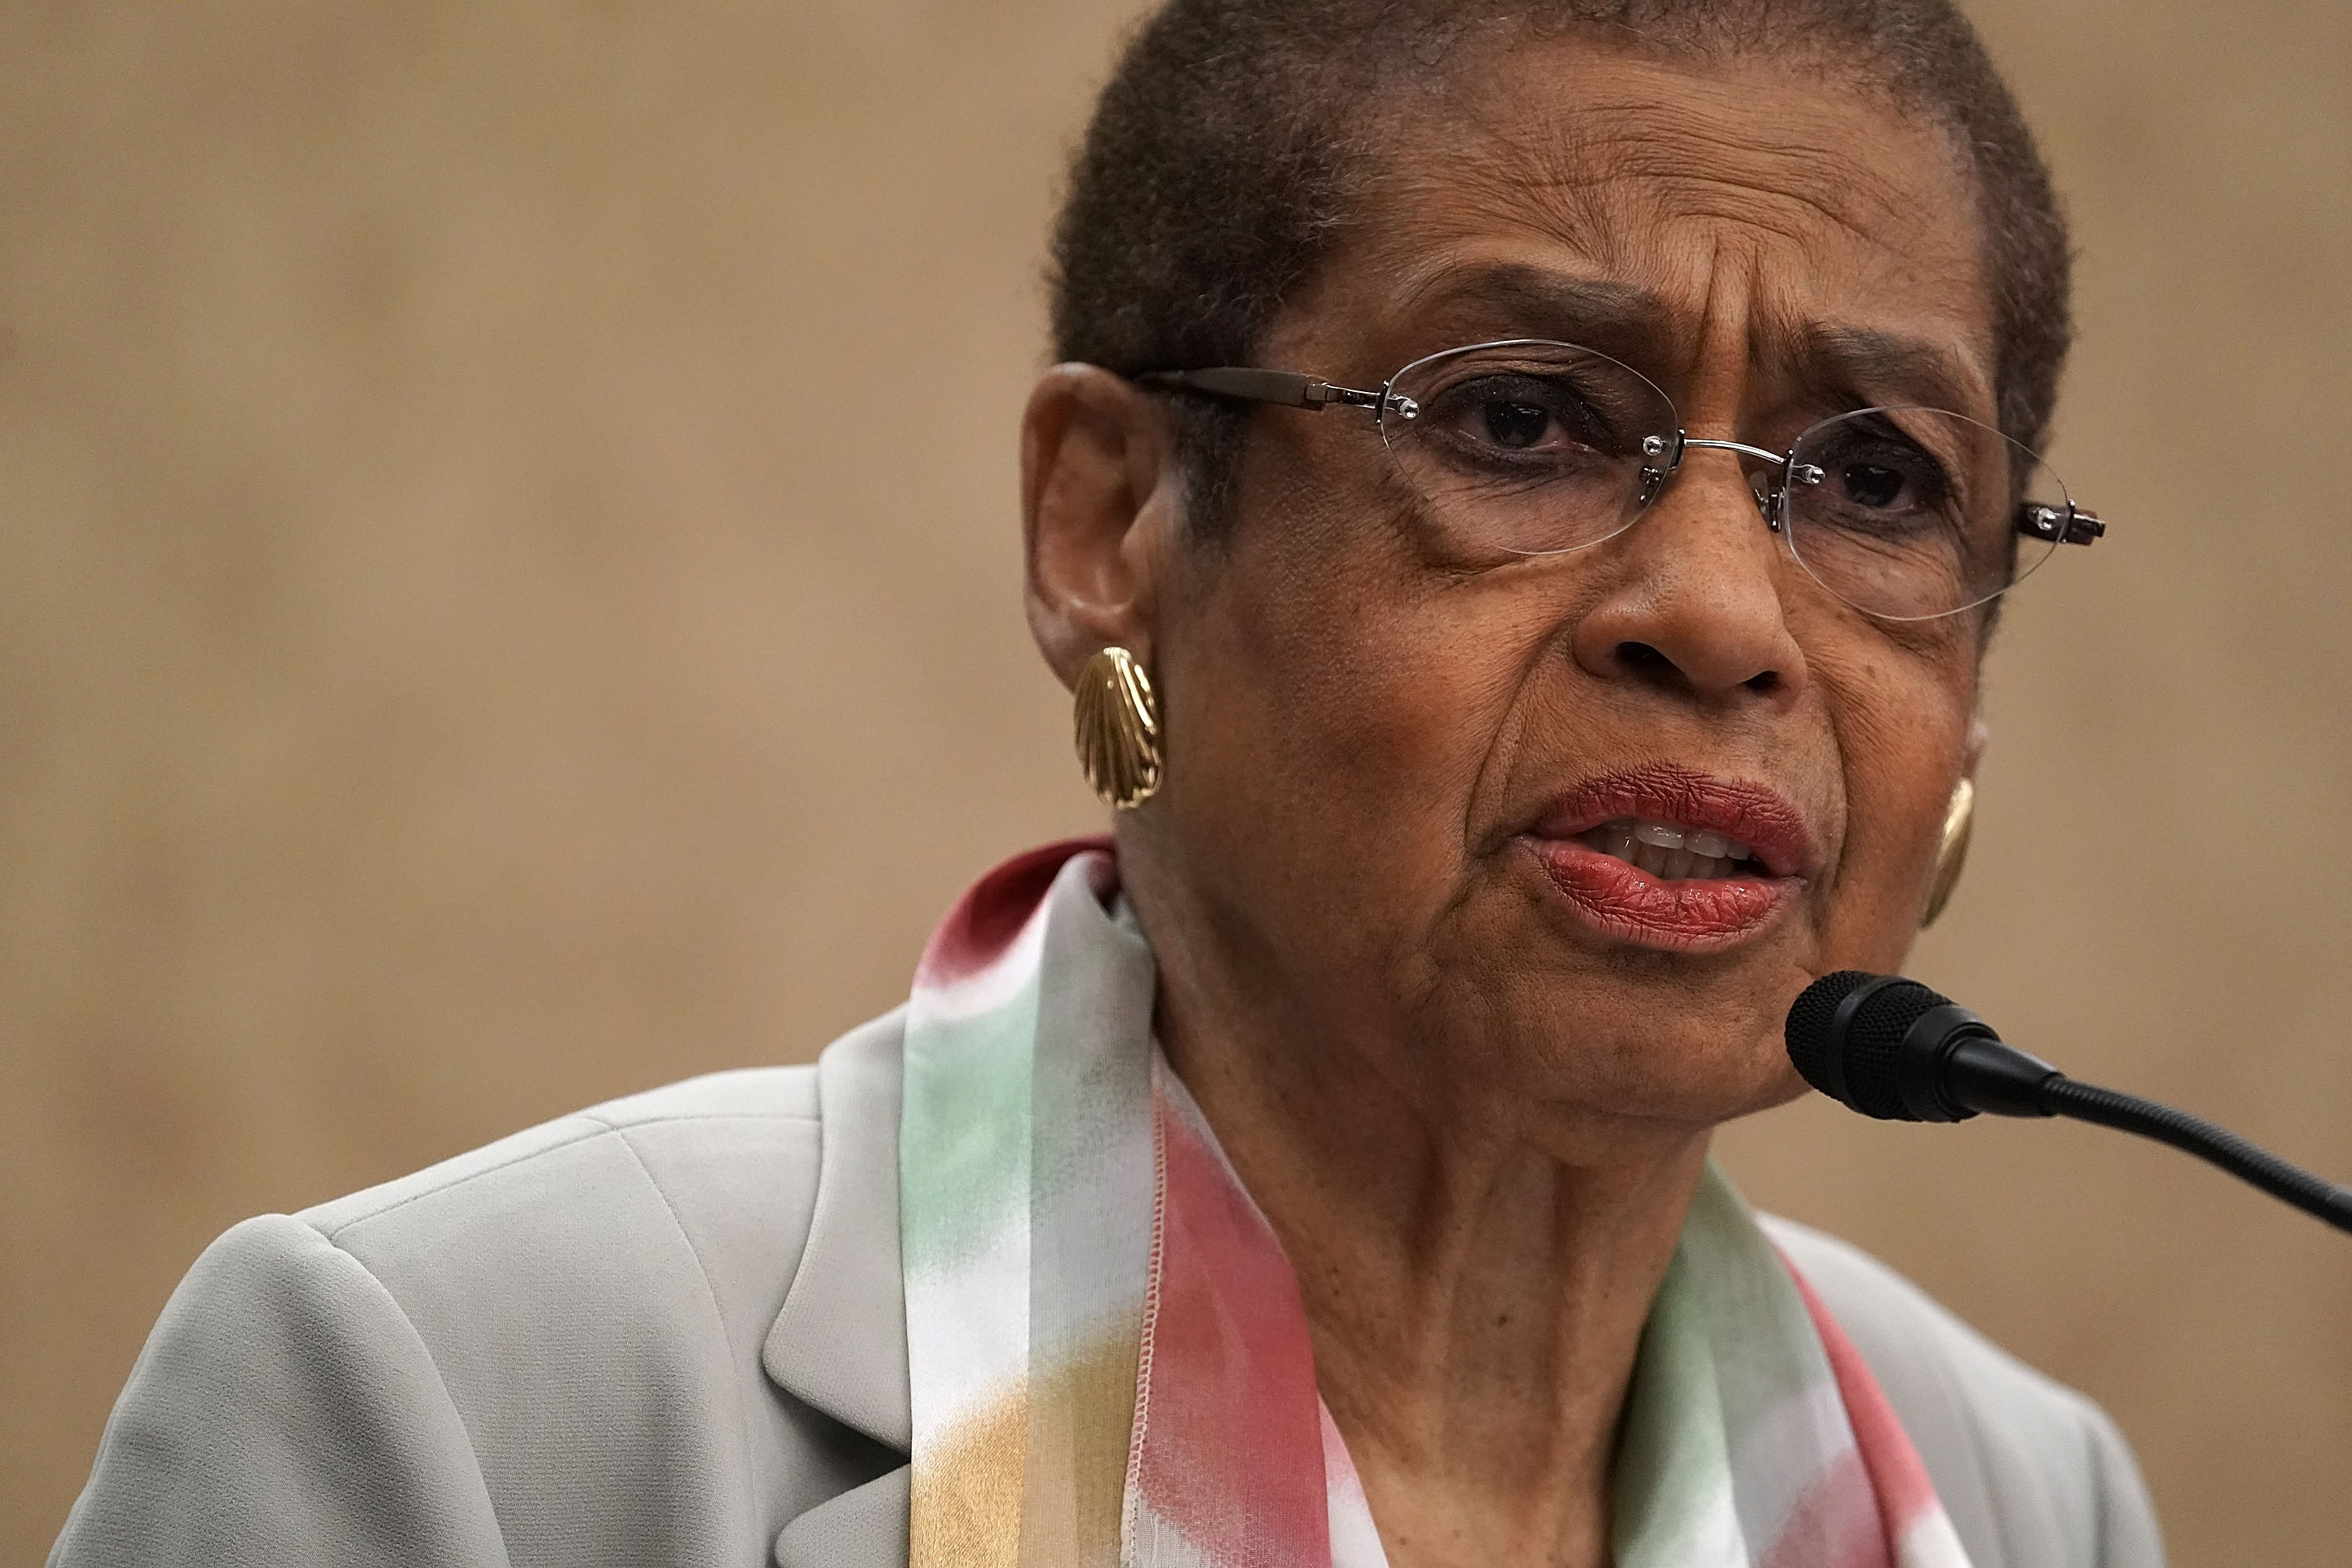 "WASHINGTON, DC - MAY 02: U.S. Del. Eleanor Holmes Norton (D-DC) speaks during a news conference May 2, 2018 on Capitol Hill in Washington, DC. Del. Holmes Norton held a news conference to discuss ""efforts to protect D.C.'s local laws during the FY2019 appropriations process, including gun safety, anti-discrimination, labor, marijuana and abortion.Ó (Photo by Alex Wong/Getty Images)"